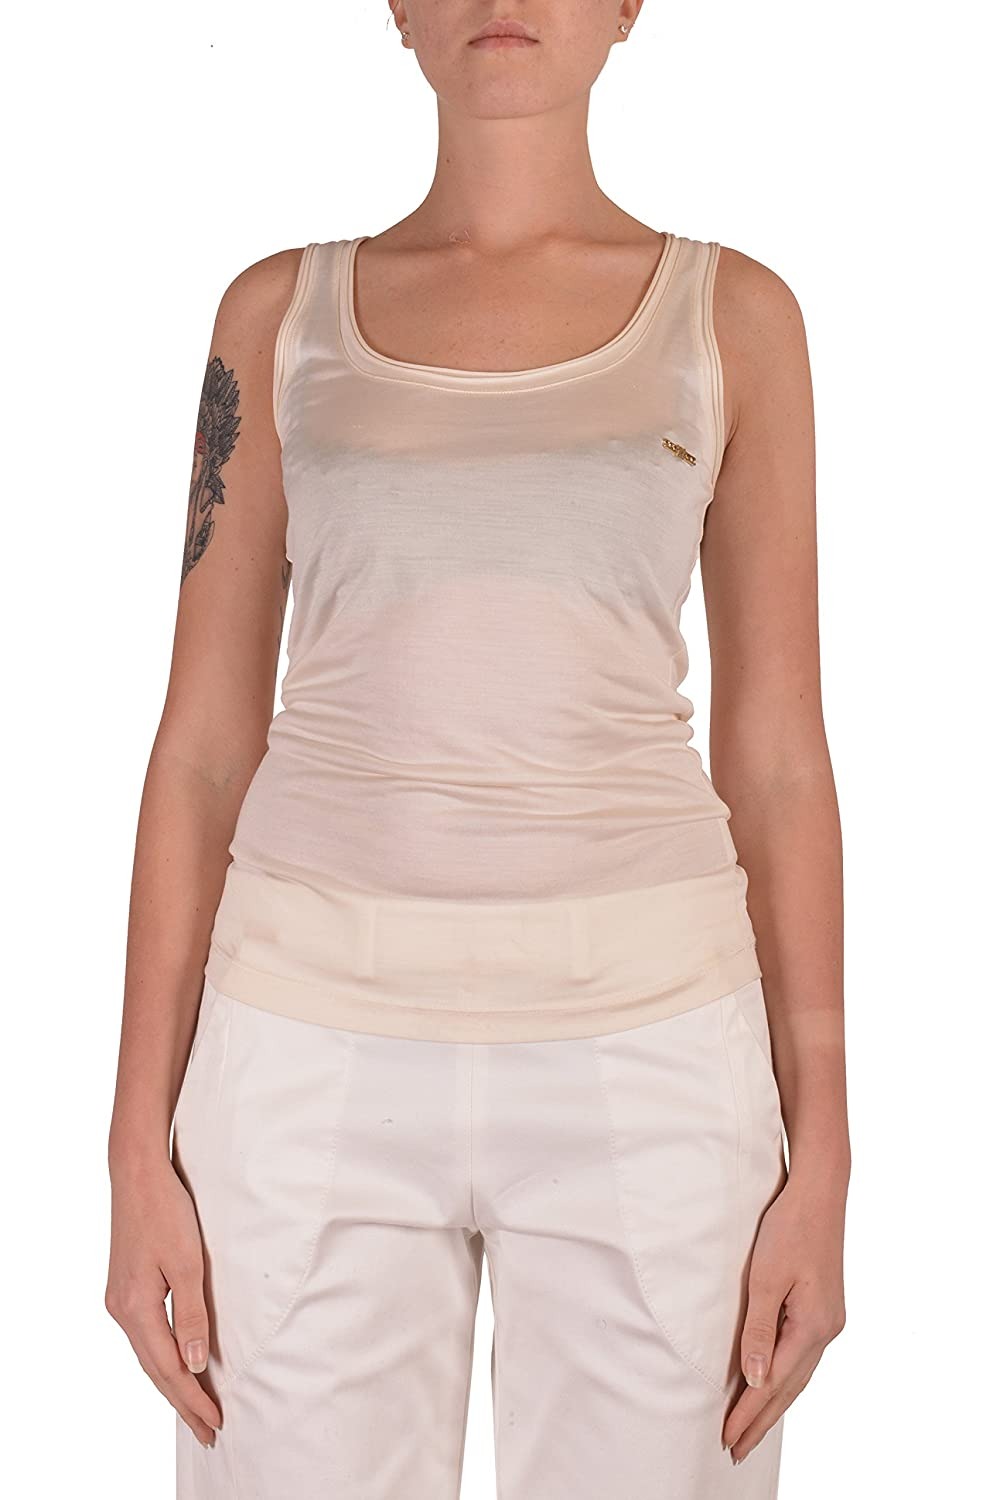 Dsquared2 Women's Beige 100% Silk Sleeveless Tank Top US S IT 40